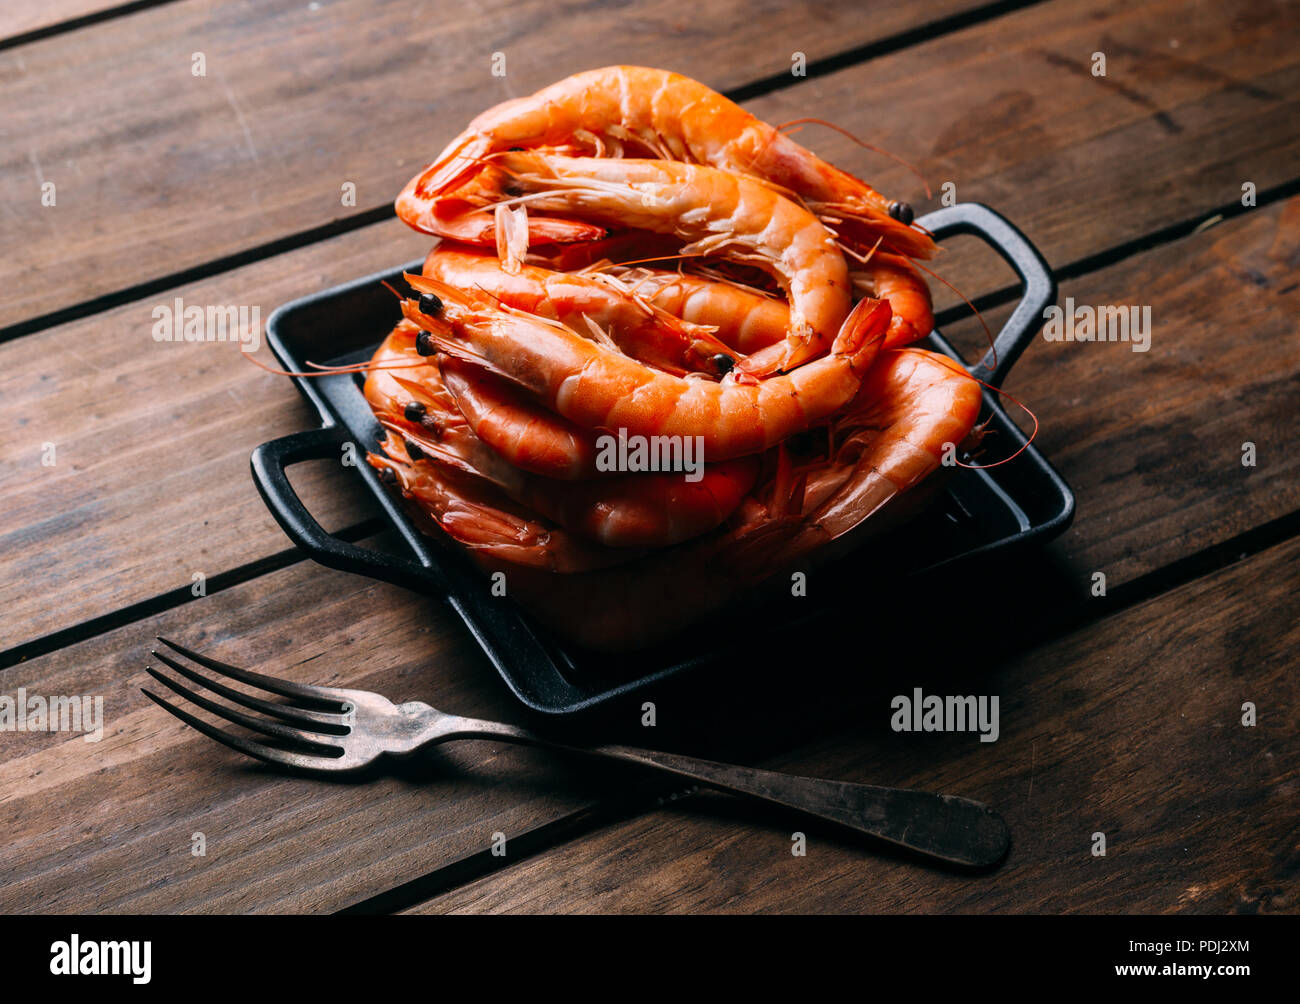 Delicious prawns in a pan on a wooden table - Stock Image